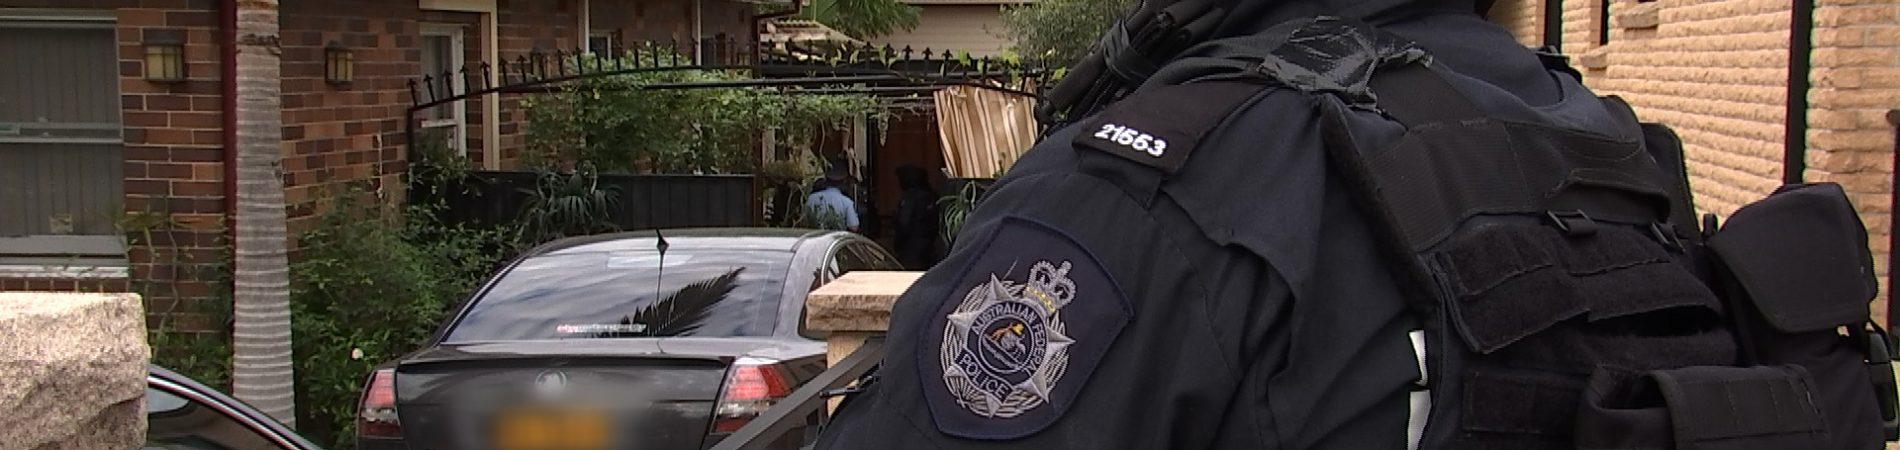 Western Sydney Man Charged Over Alleged Foreign Fighter Offences